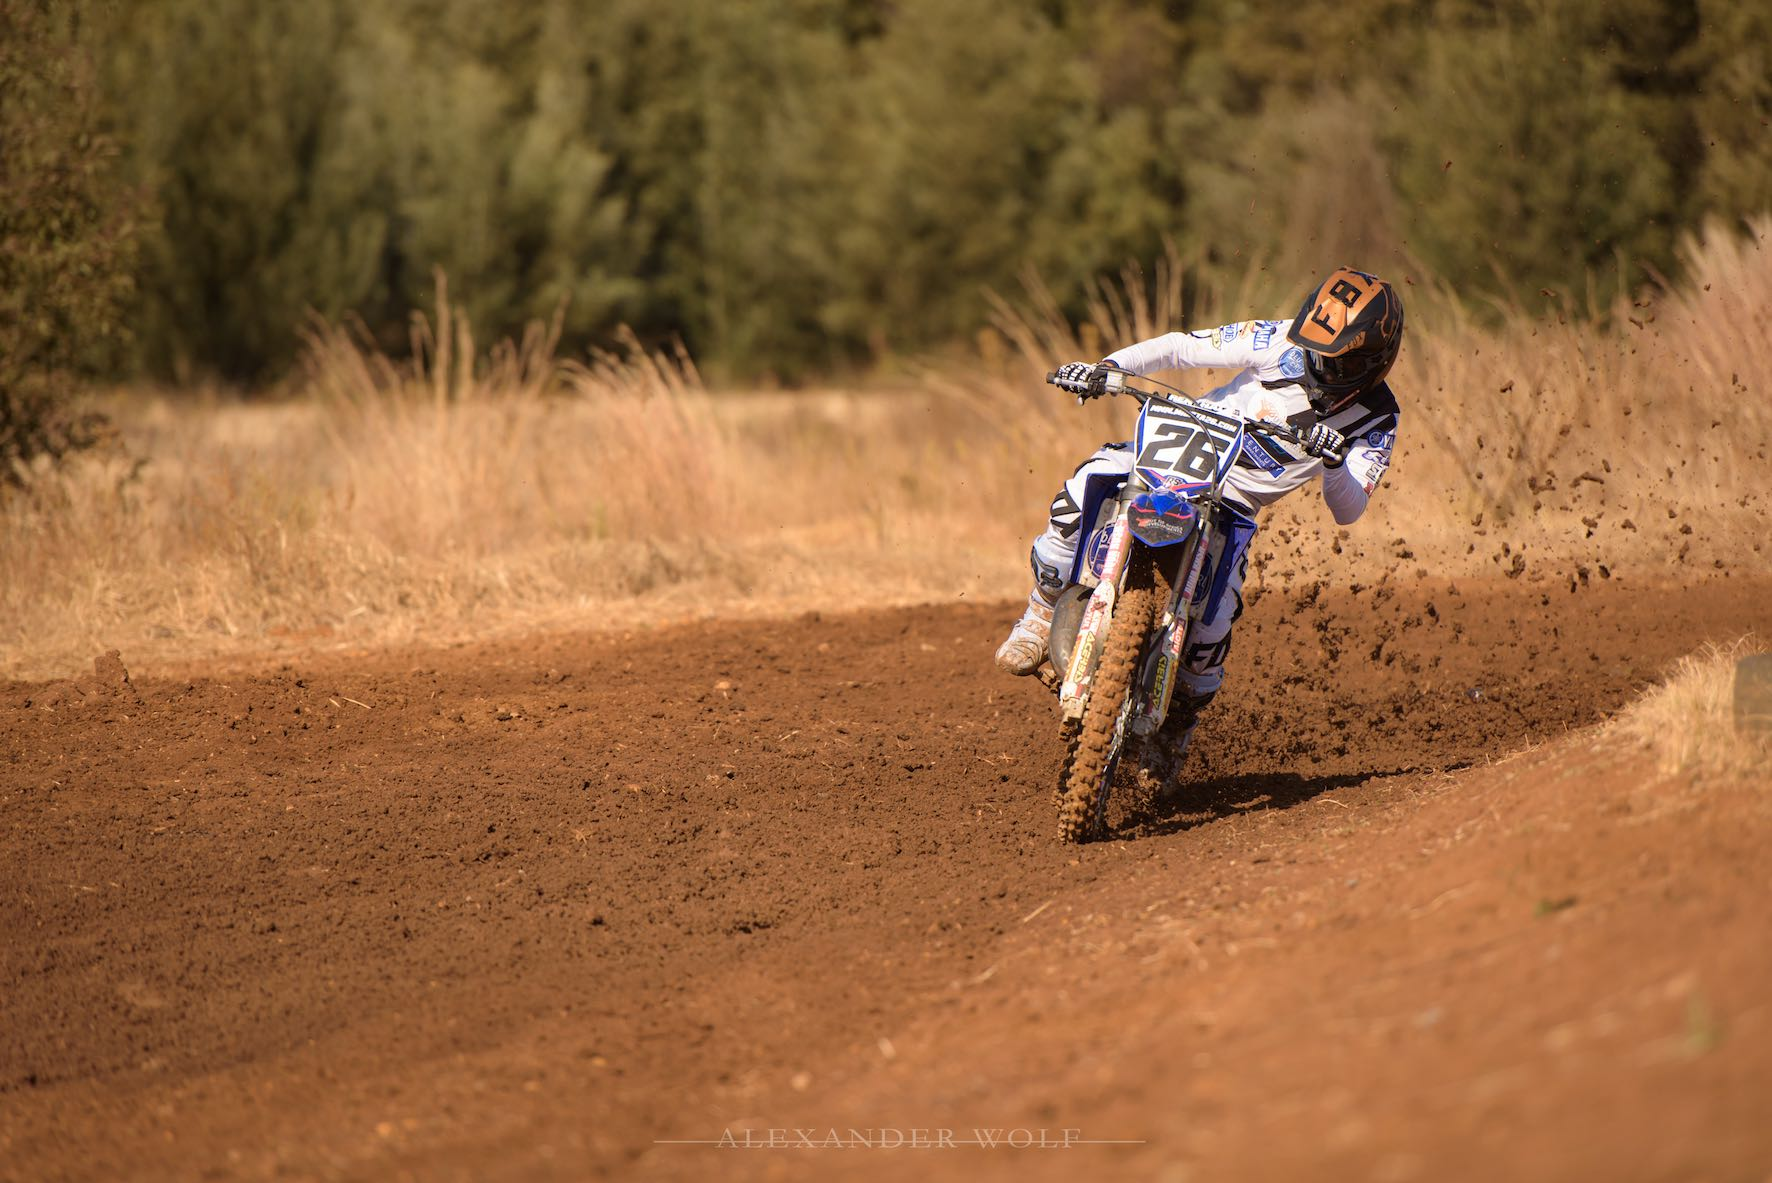 Miguel de Waal riding at the Smoking Piston MX Track